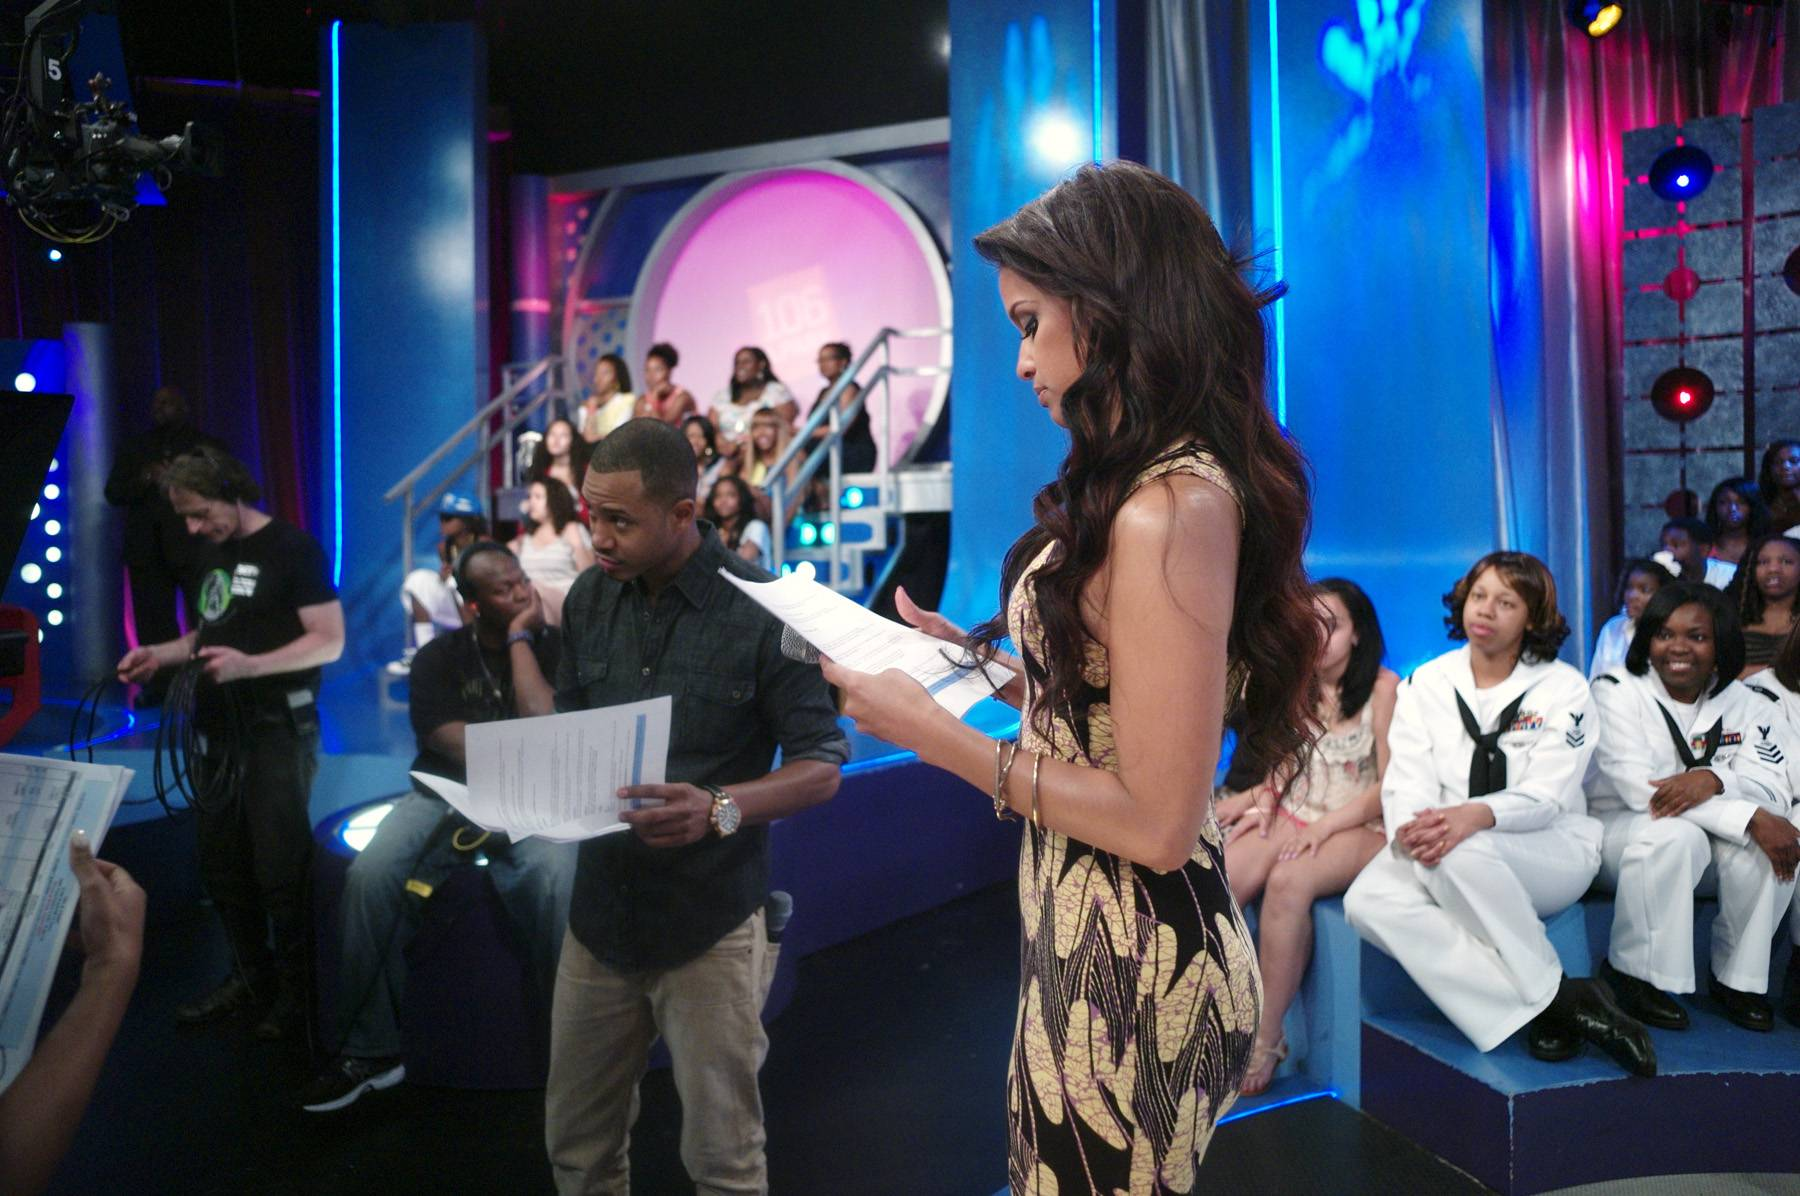 I Got This - Terrence J and Rocsi Diaz go over their scripts during a commercial break at 106 & Park, May 29, 2012. (Photo: John Ricard / BET)